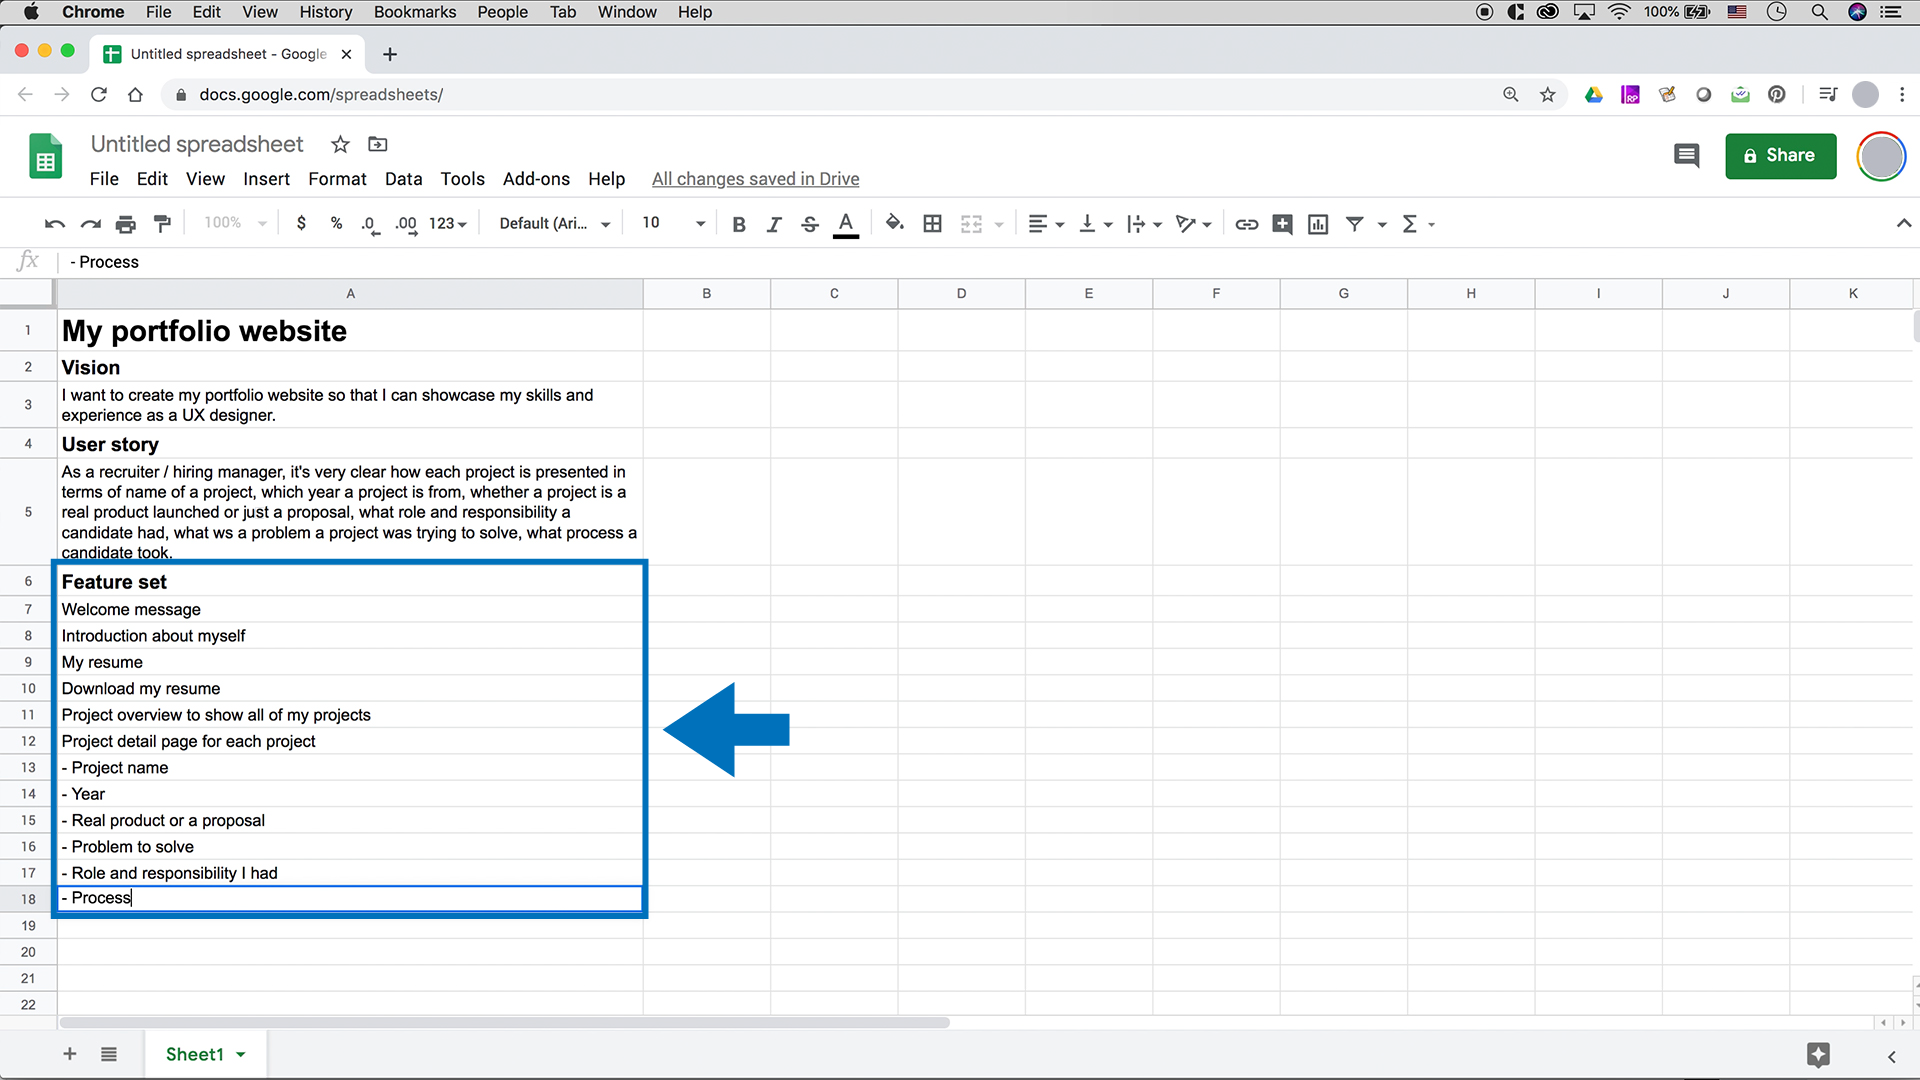 A screenshot of Google Sheets with a vision, a user story, and feature set typed in.